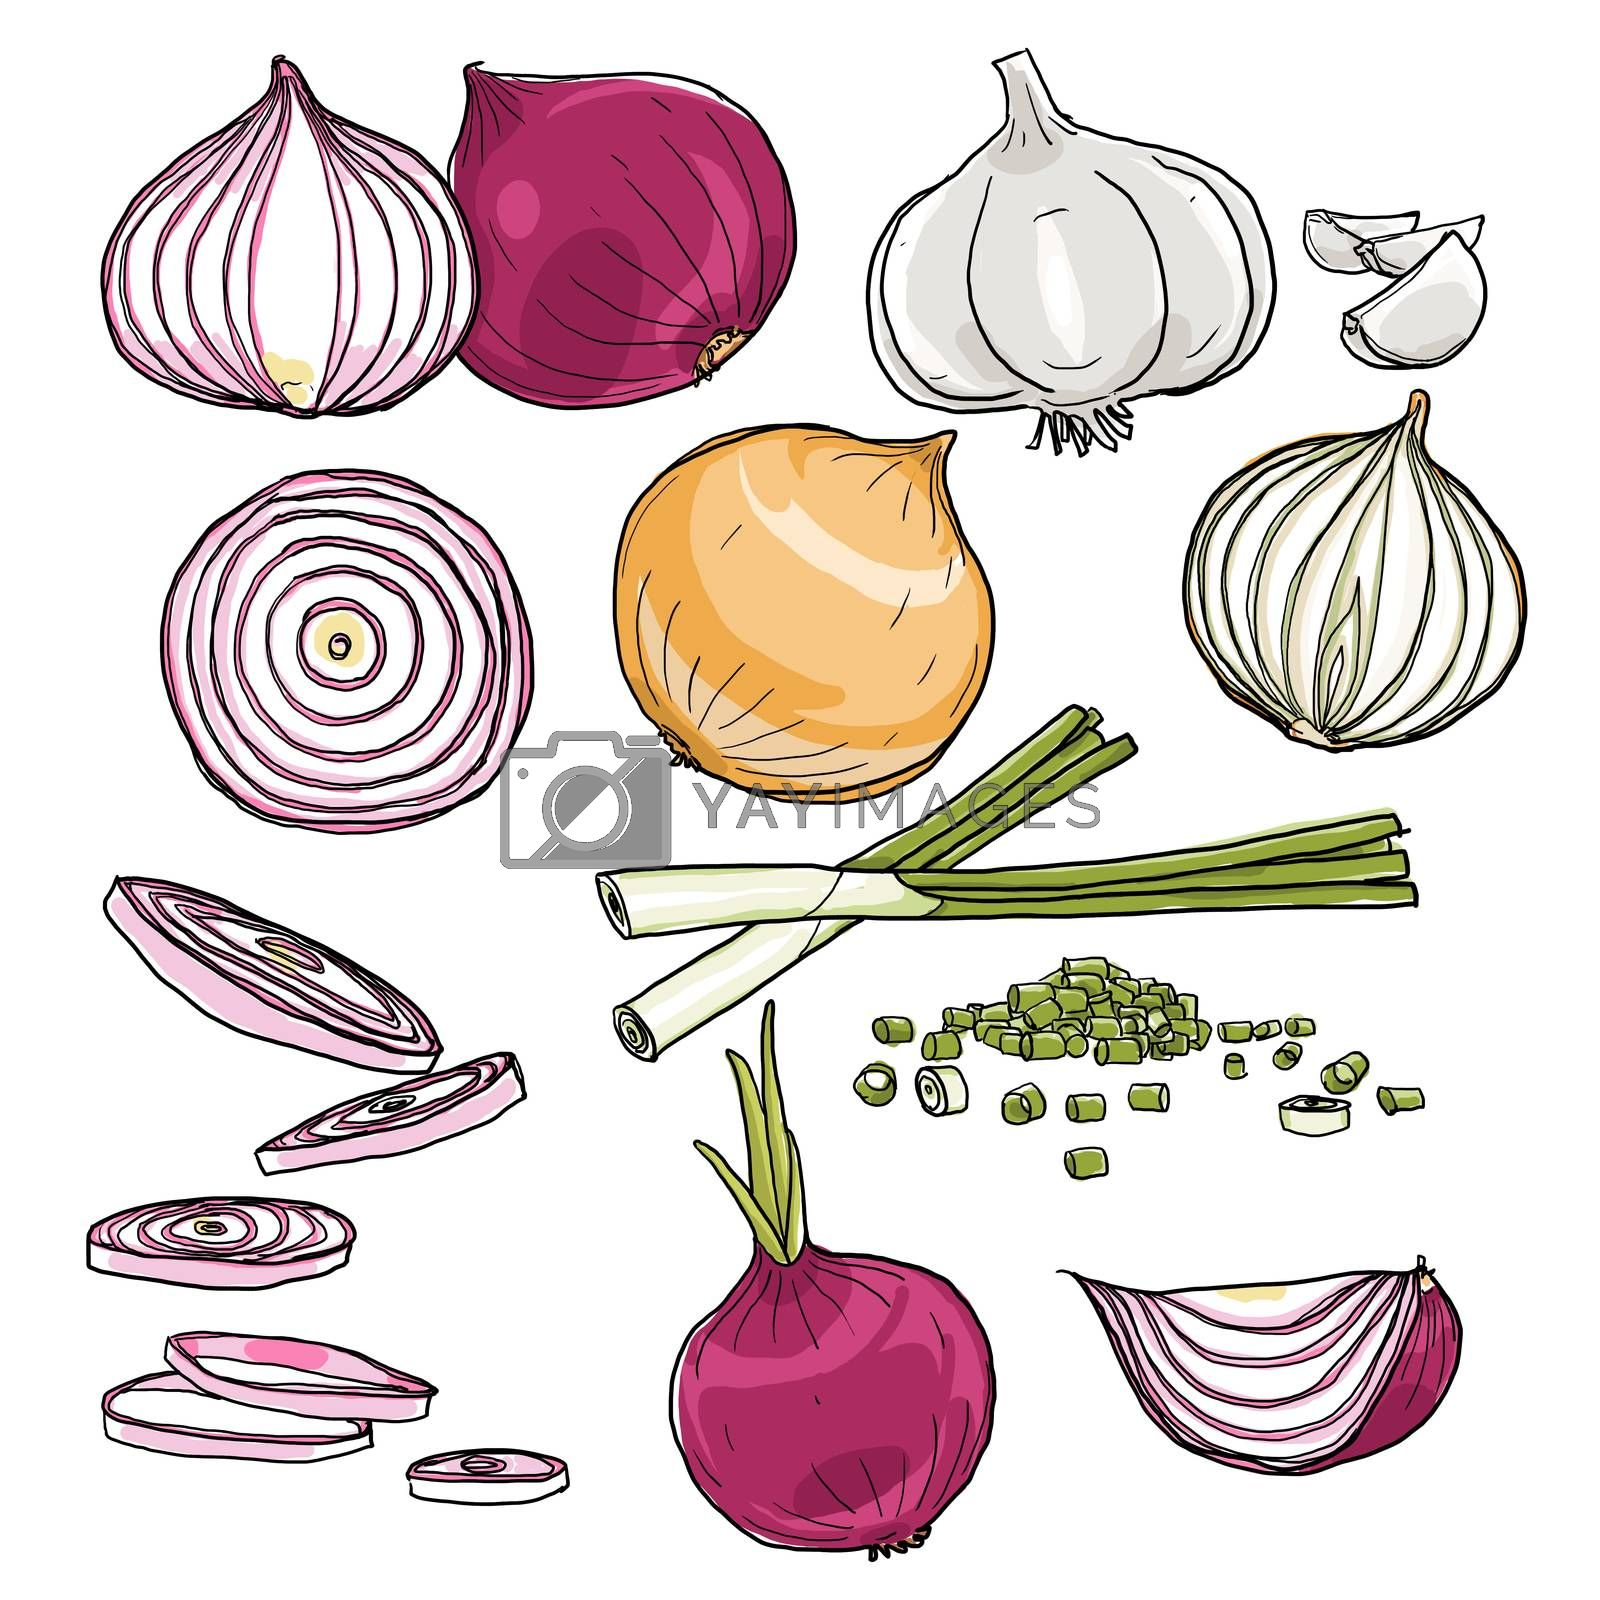 onion  set of  hand drawn art painting illustration